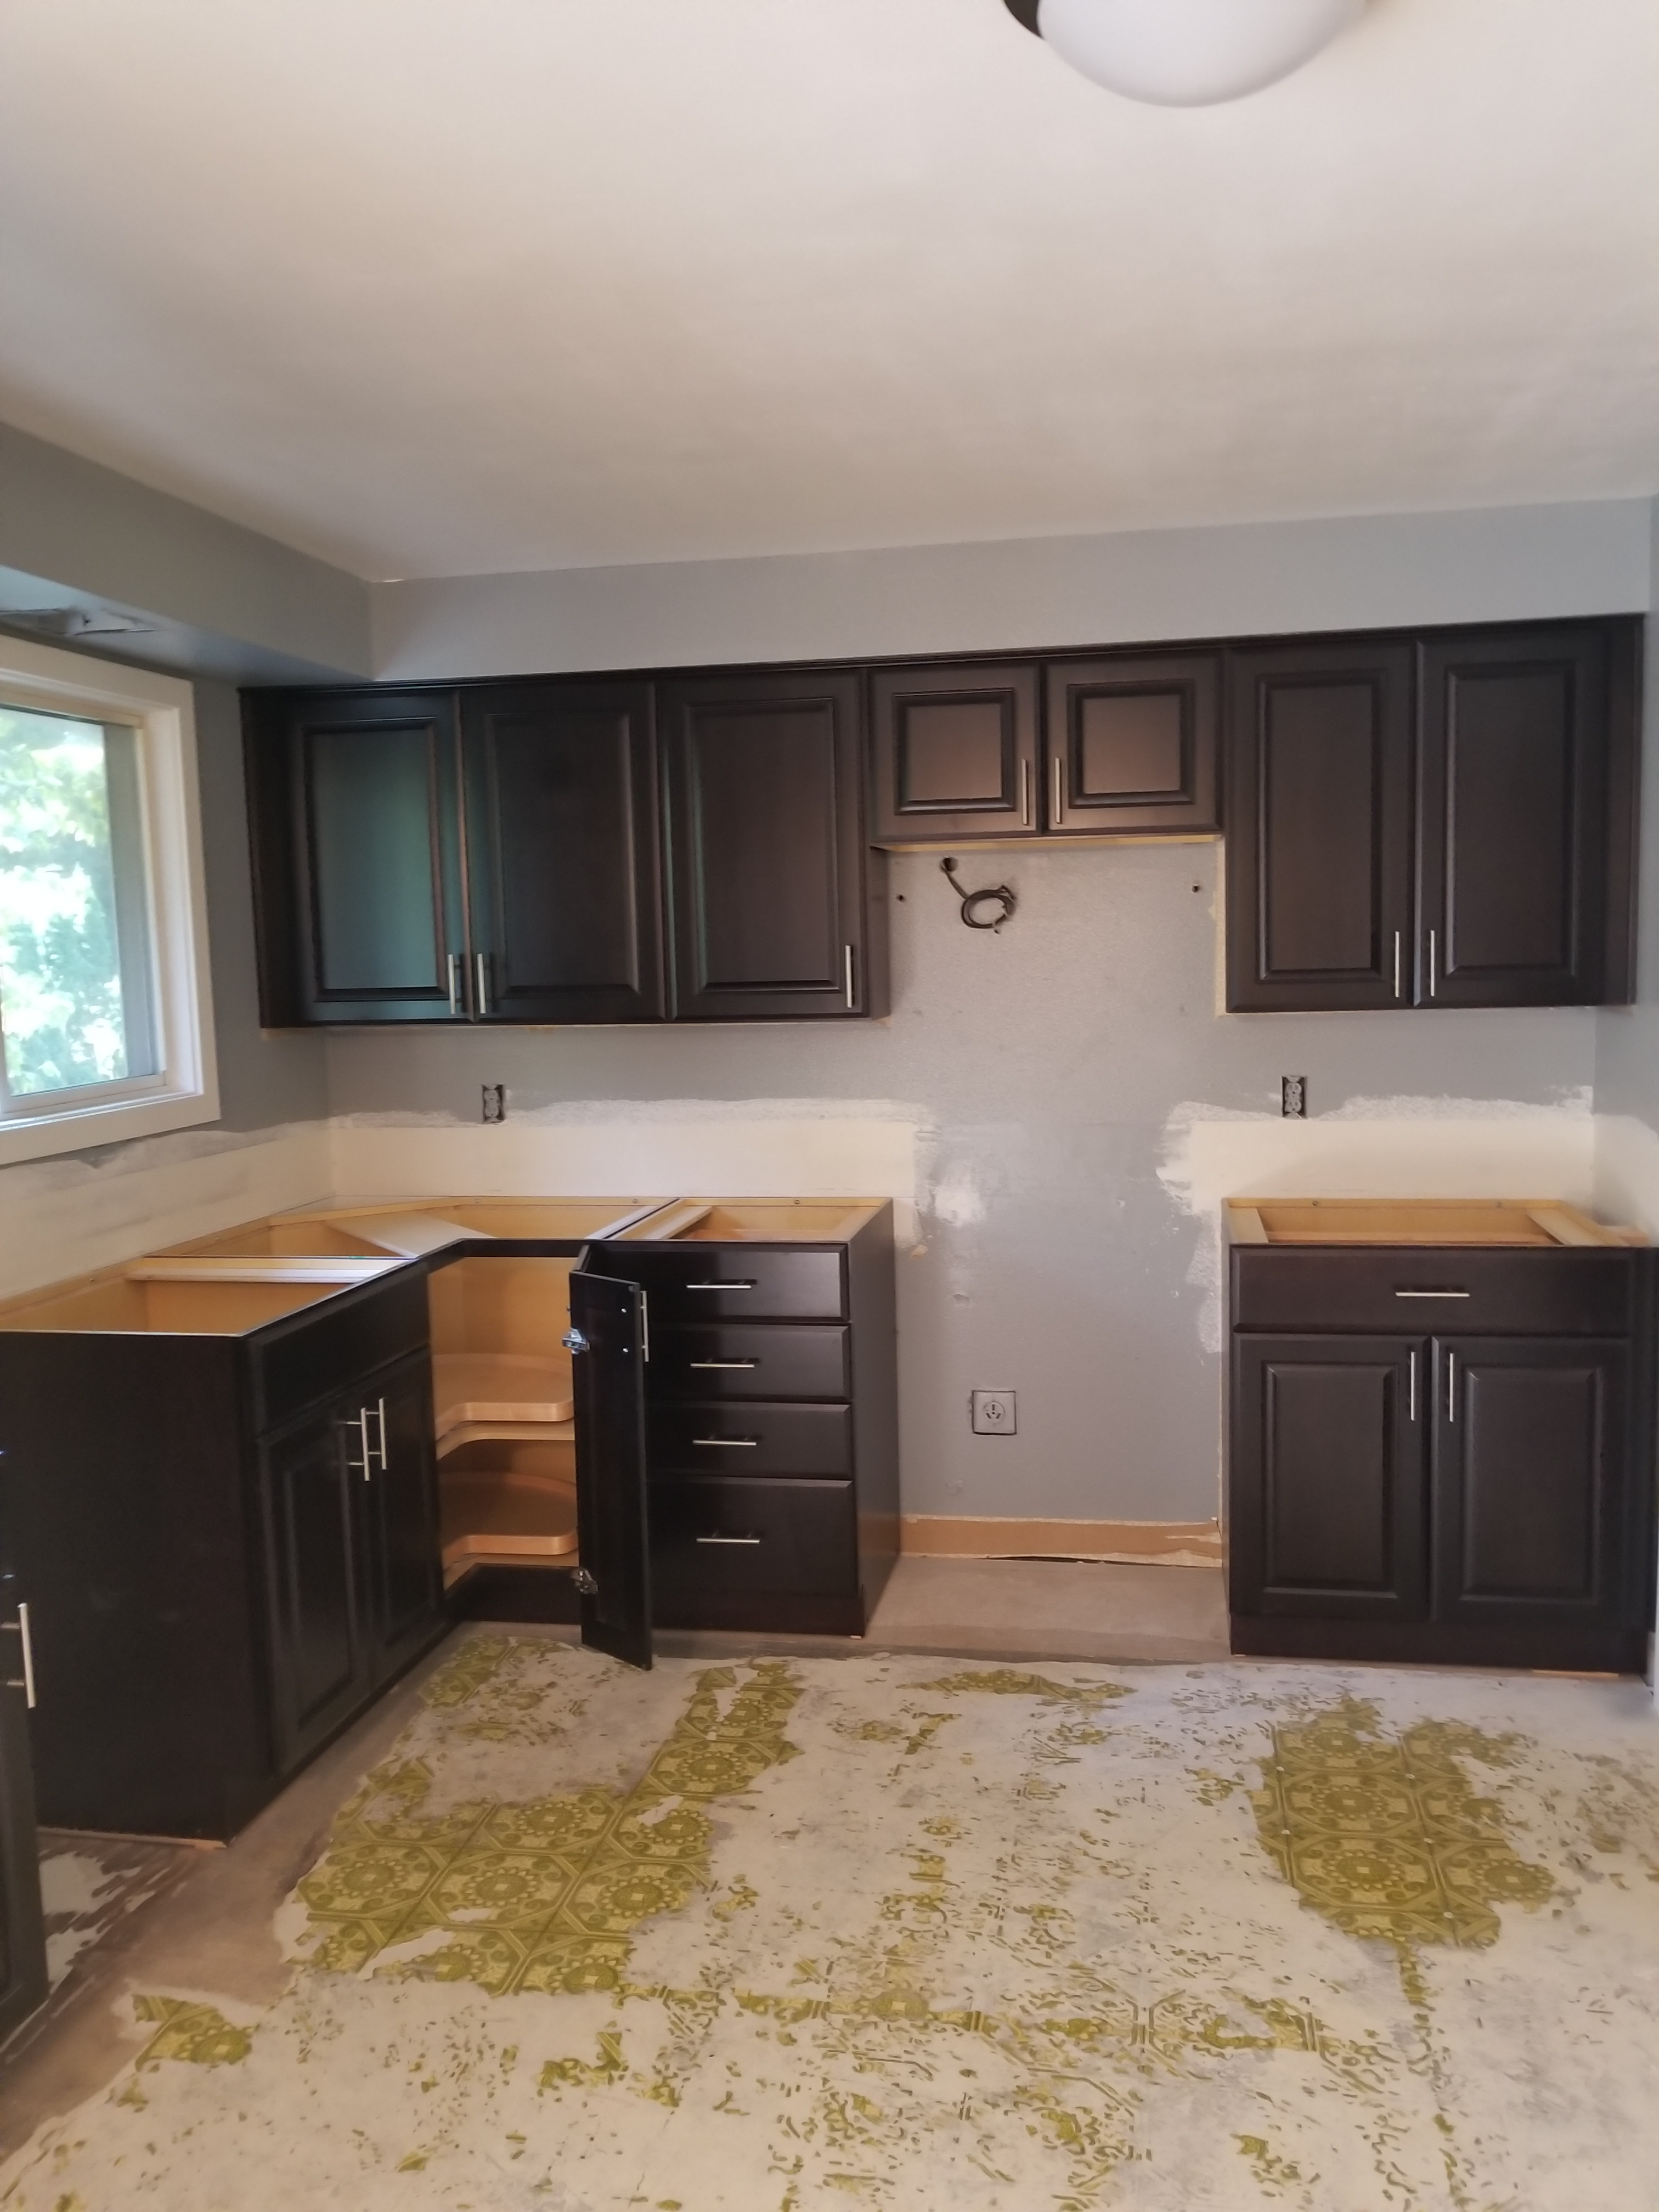 Lowes Kitchen Cabinets Reviews Sobkitchen